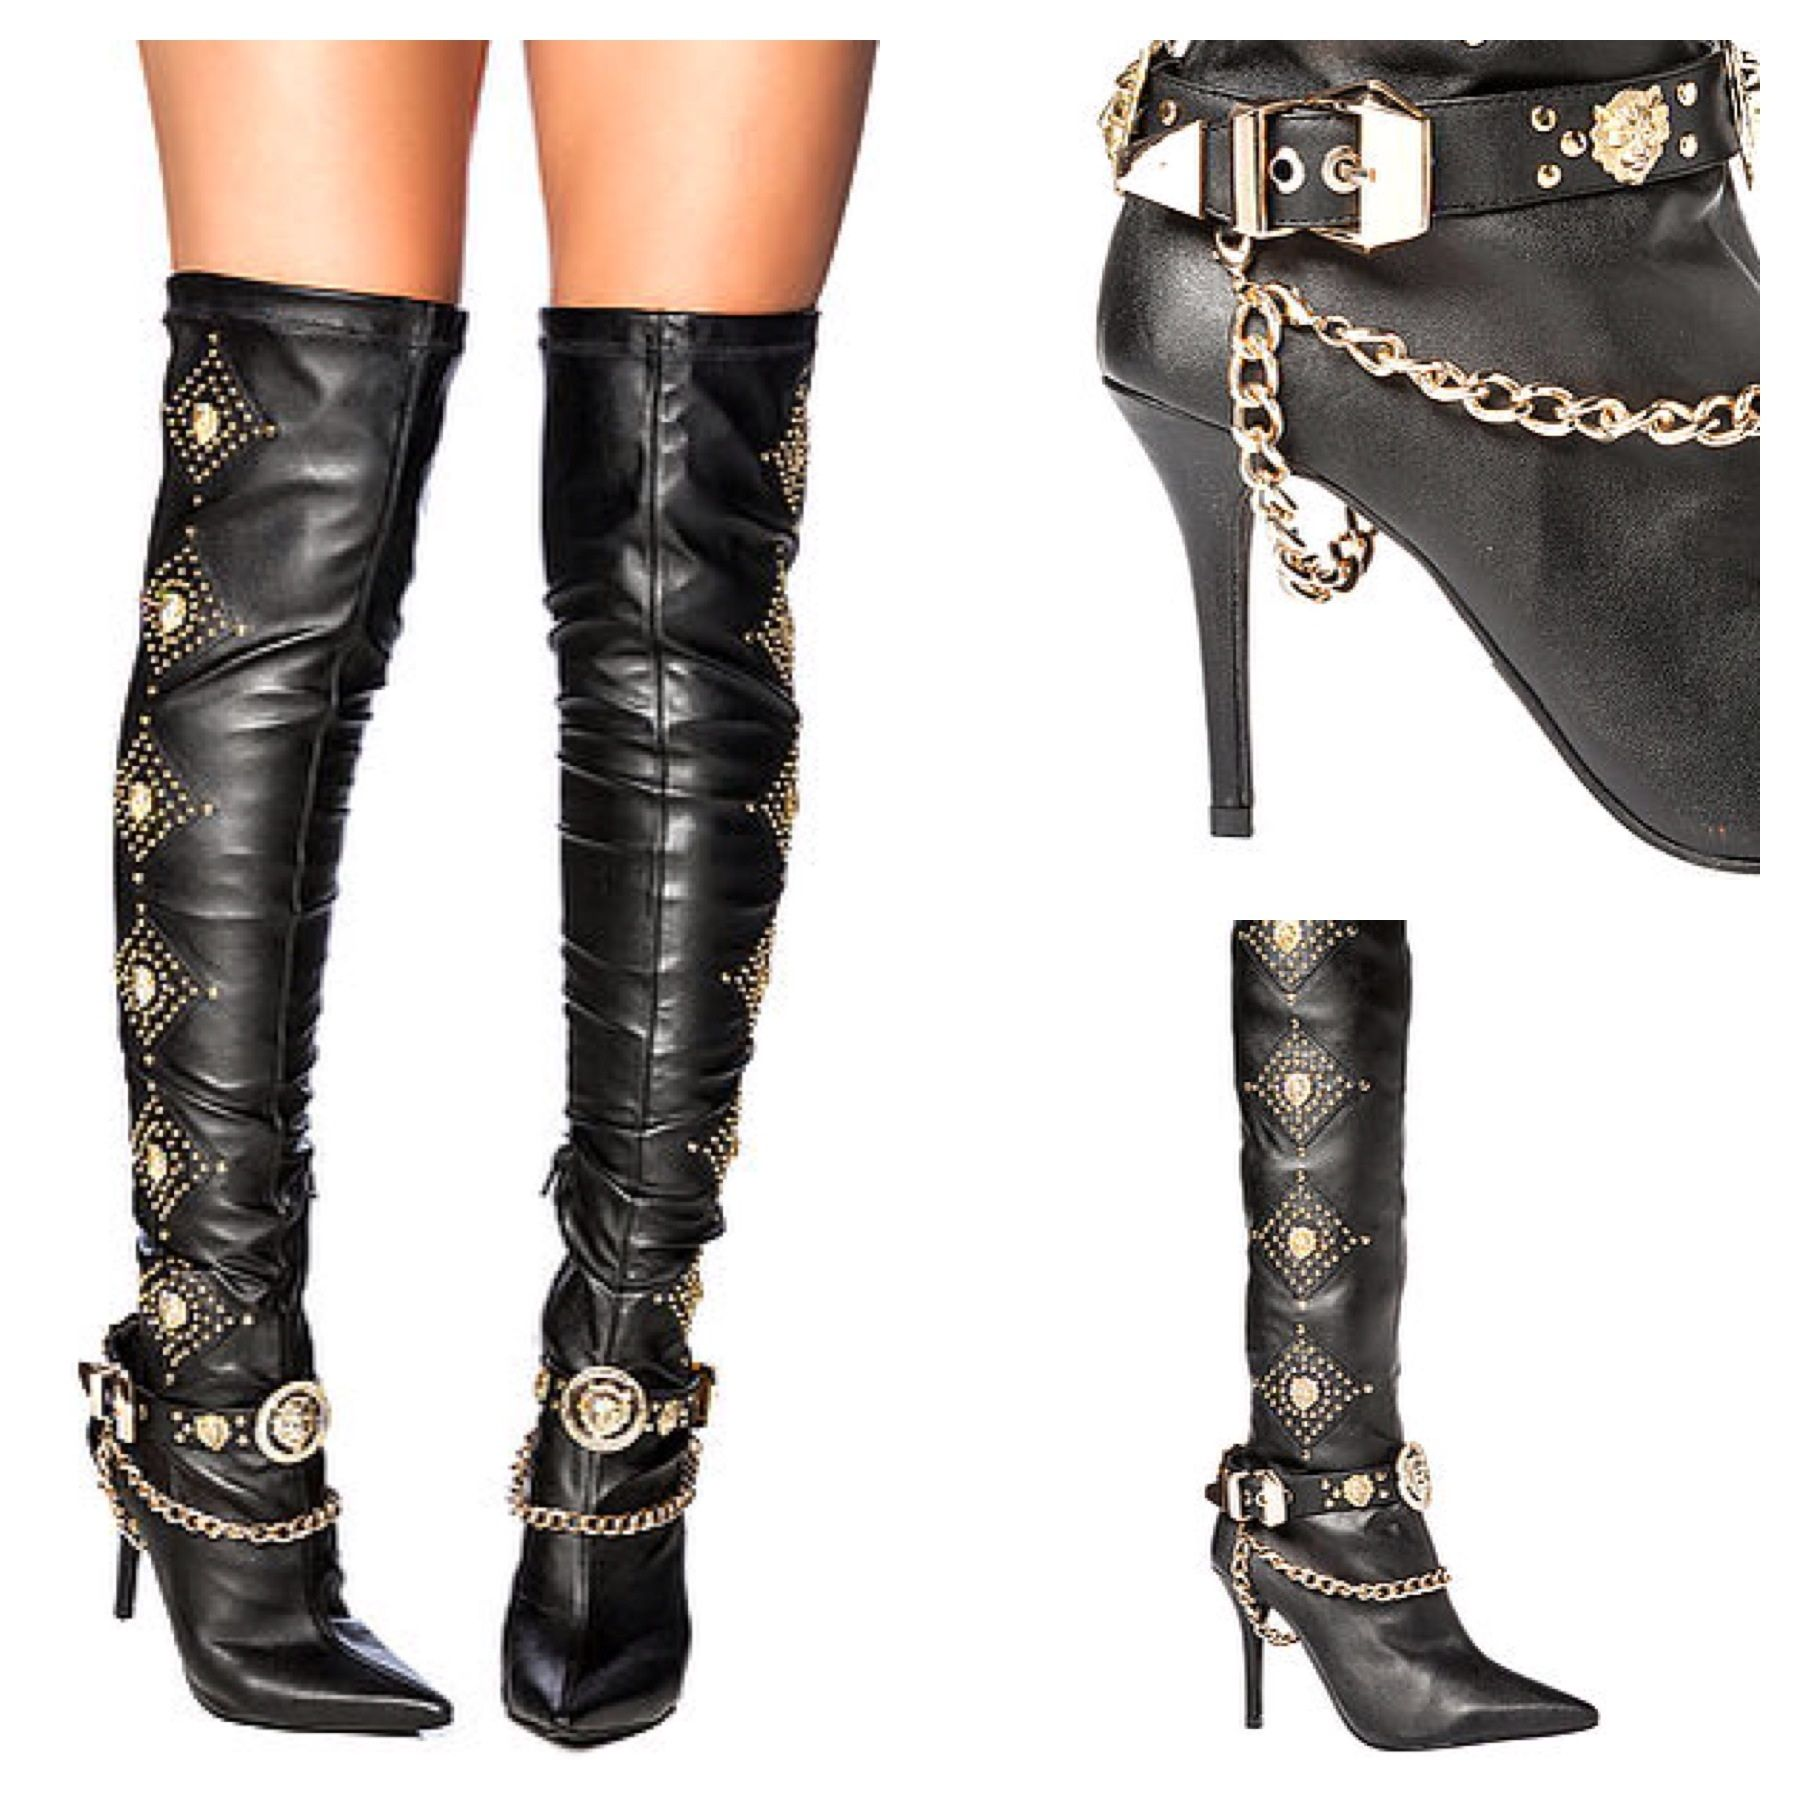 Jeffrey Campbell Purdy Thigh High boot Black And Gold Lion Head ...